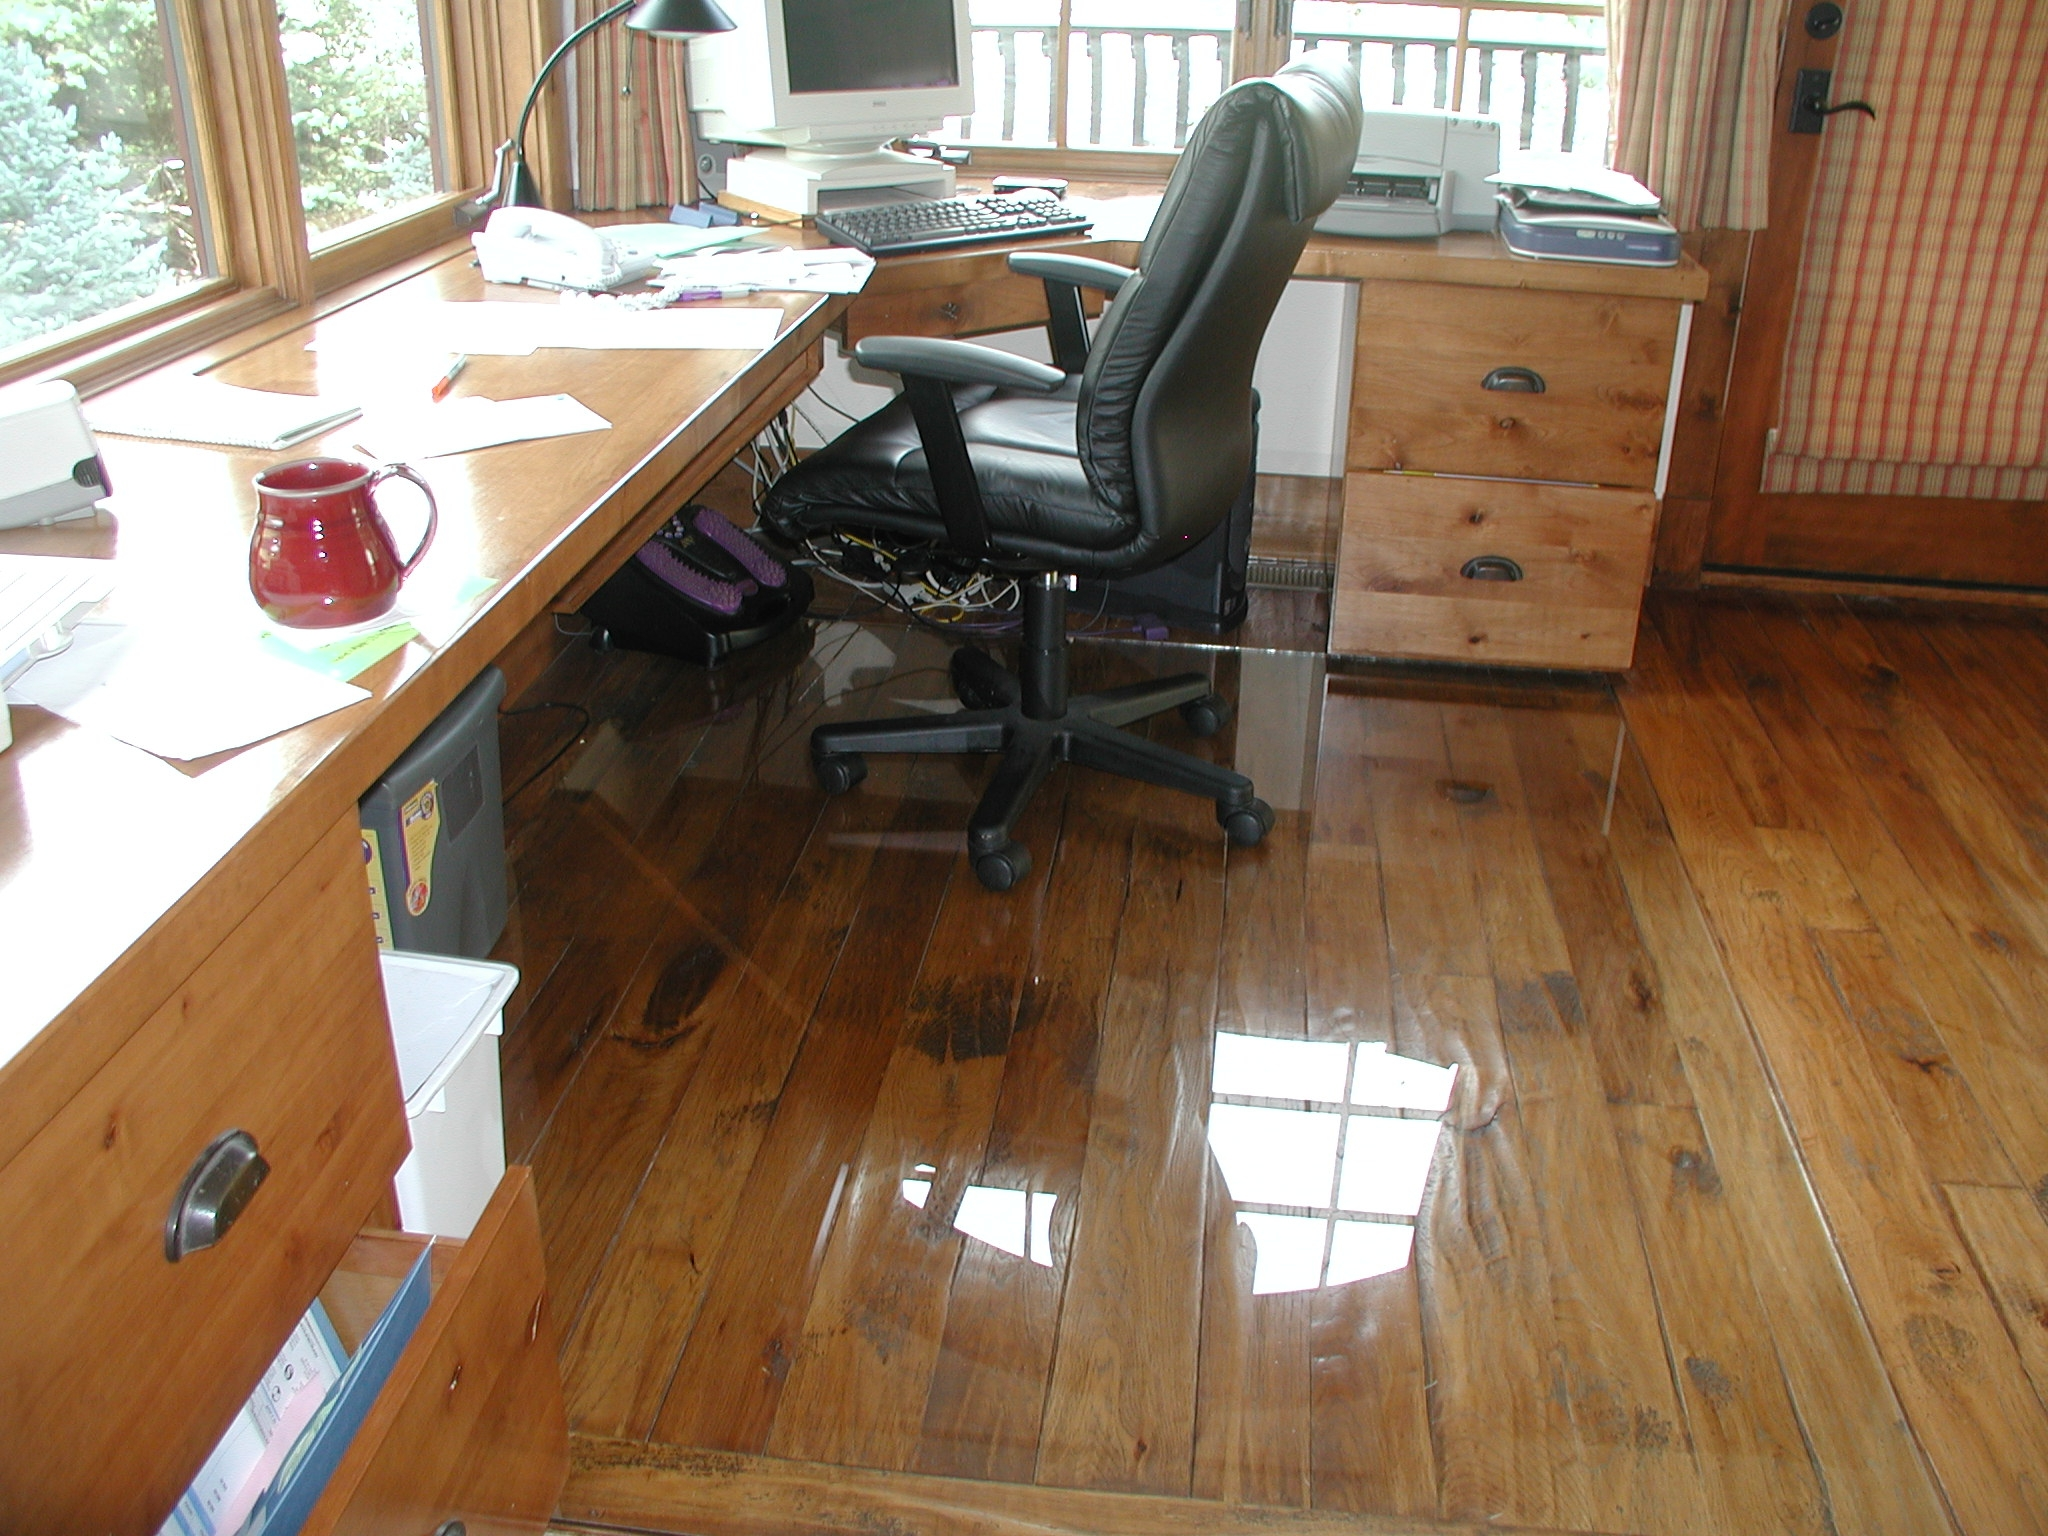 Chair Mats For Wood Floors